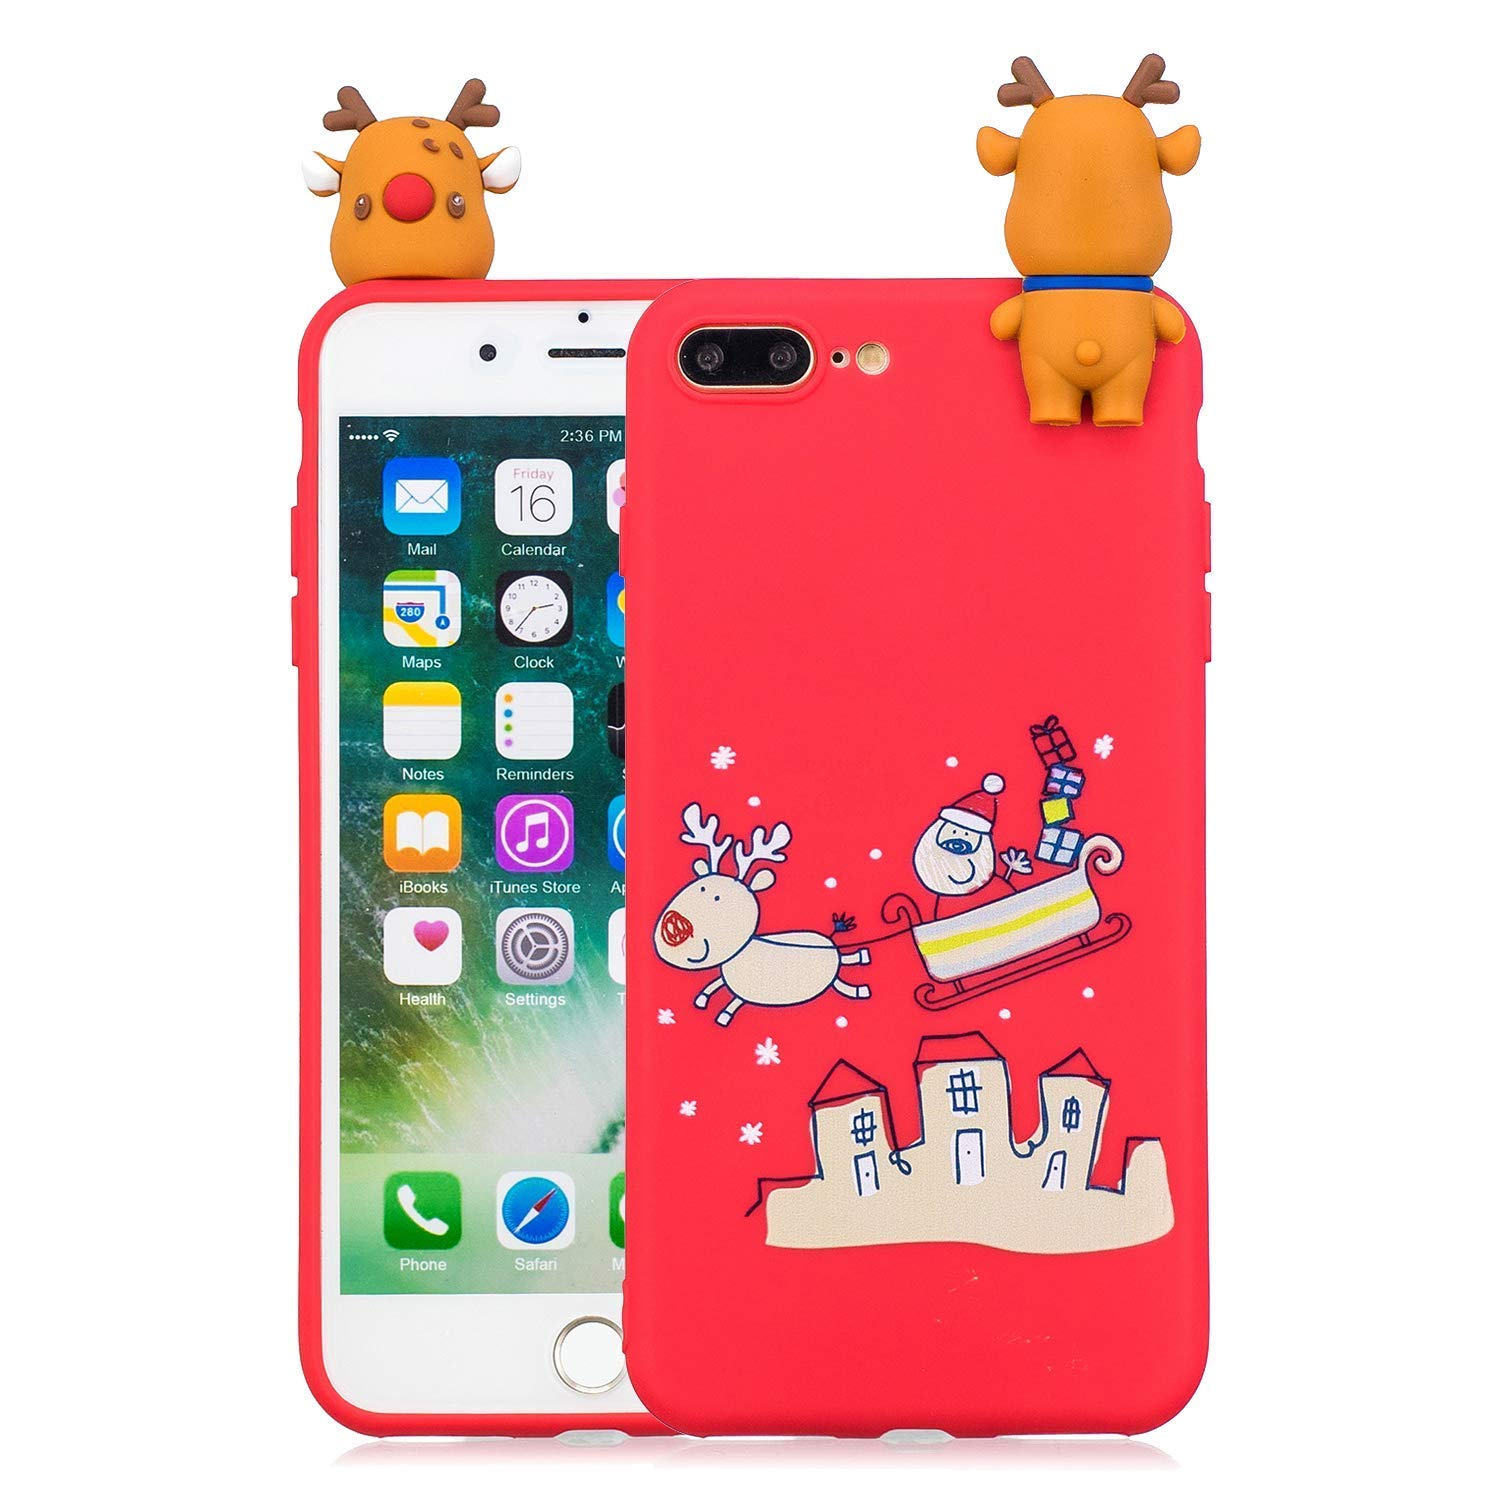 Noë l Coque pour iPhone 8 Plus, É tui Silicone iPhone 7 Plus, iPhone 8 Plus Case Cartoon 3D Mignonne Motif Christmas Noë l Flocon de Neige Housse de Protection Soft Doux TPU Backcover Étui Silicone iPhone 7 Plus Okssud DYY2018002498#05